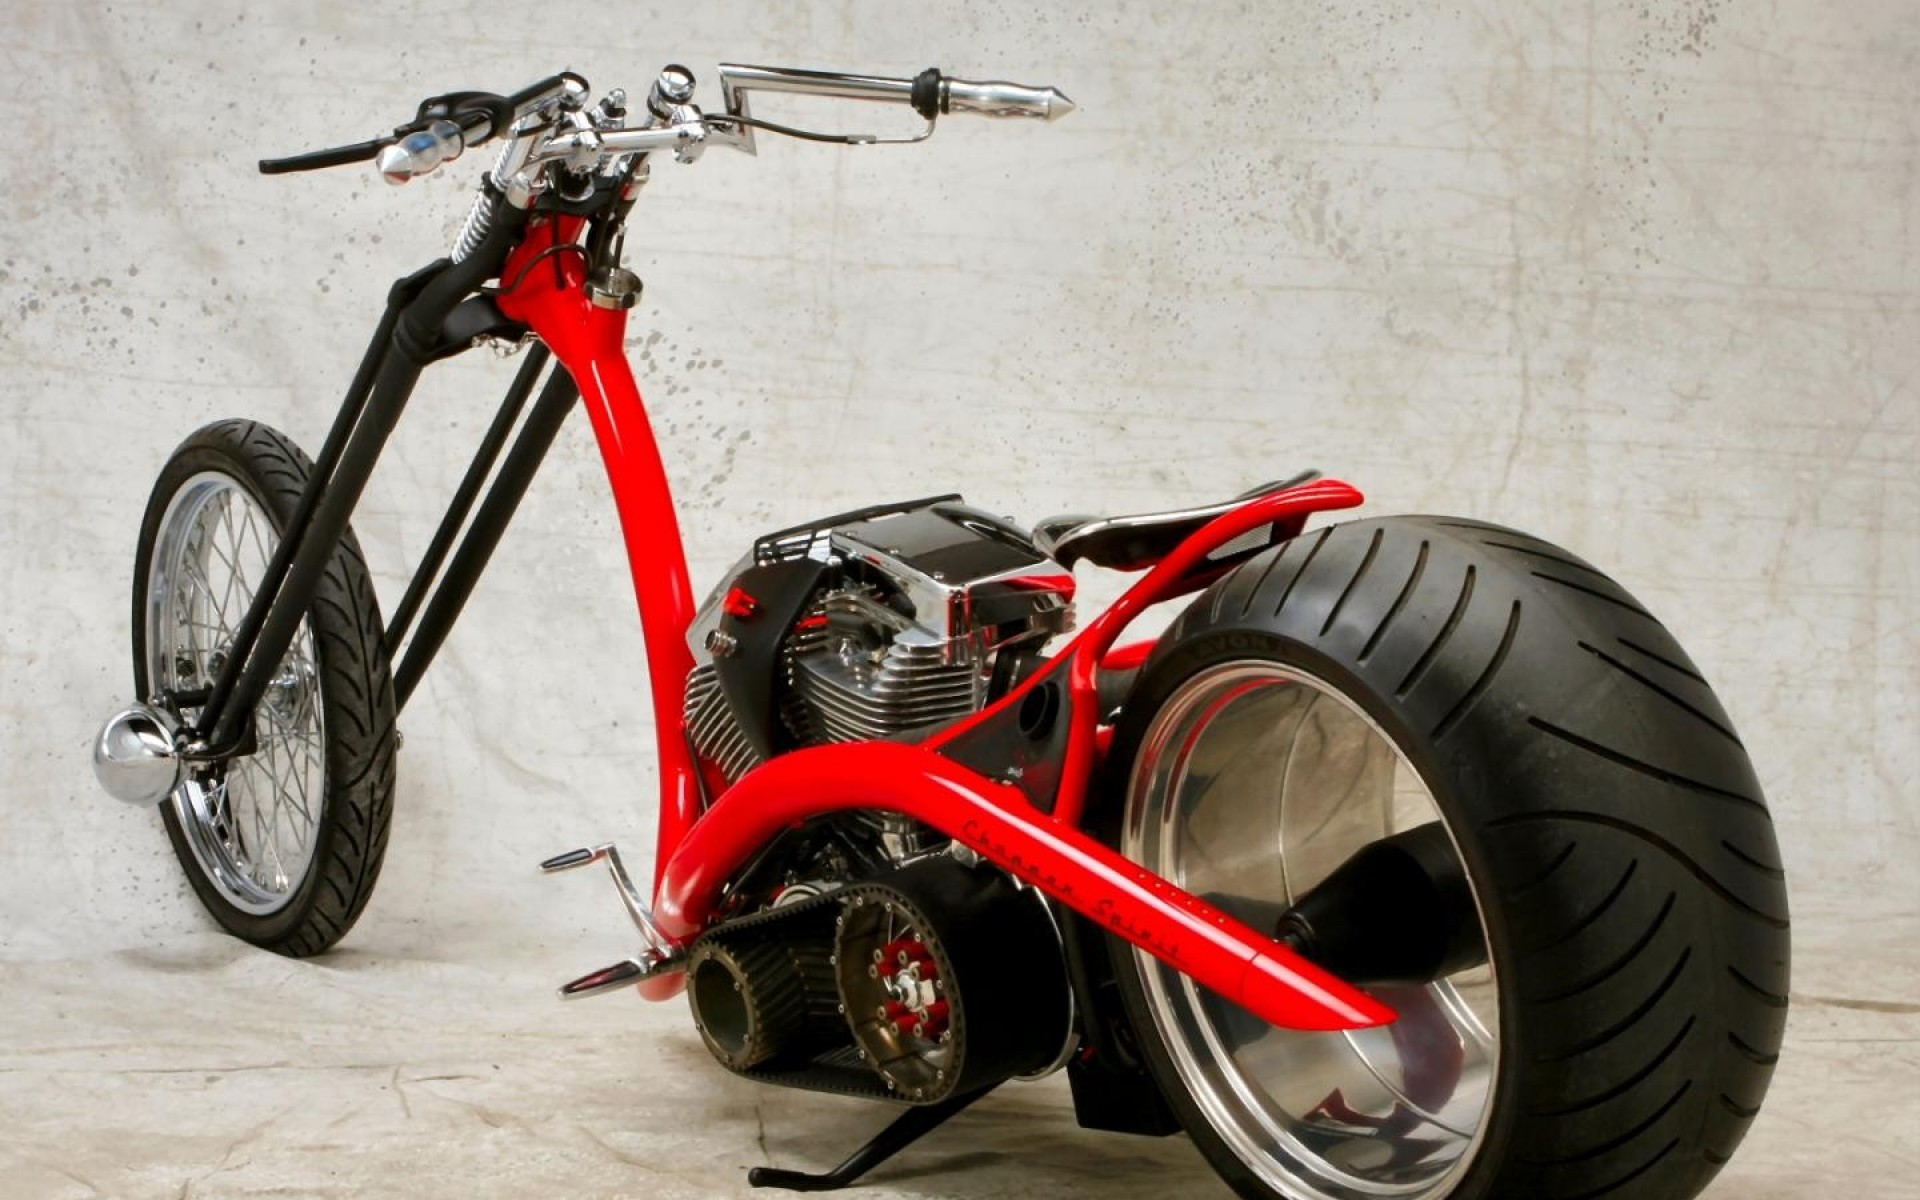 Red Motorbikes Assembled Bikes Choppers wallpaper